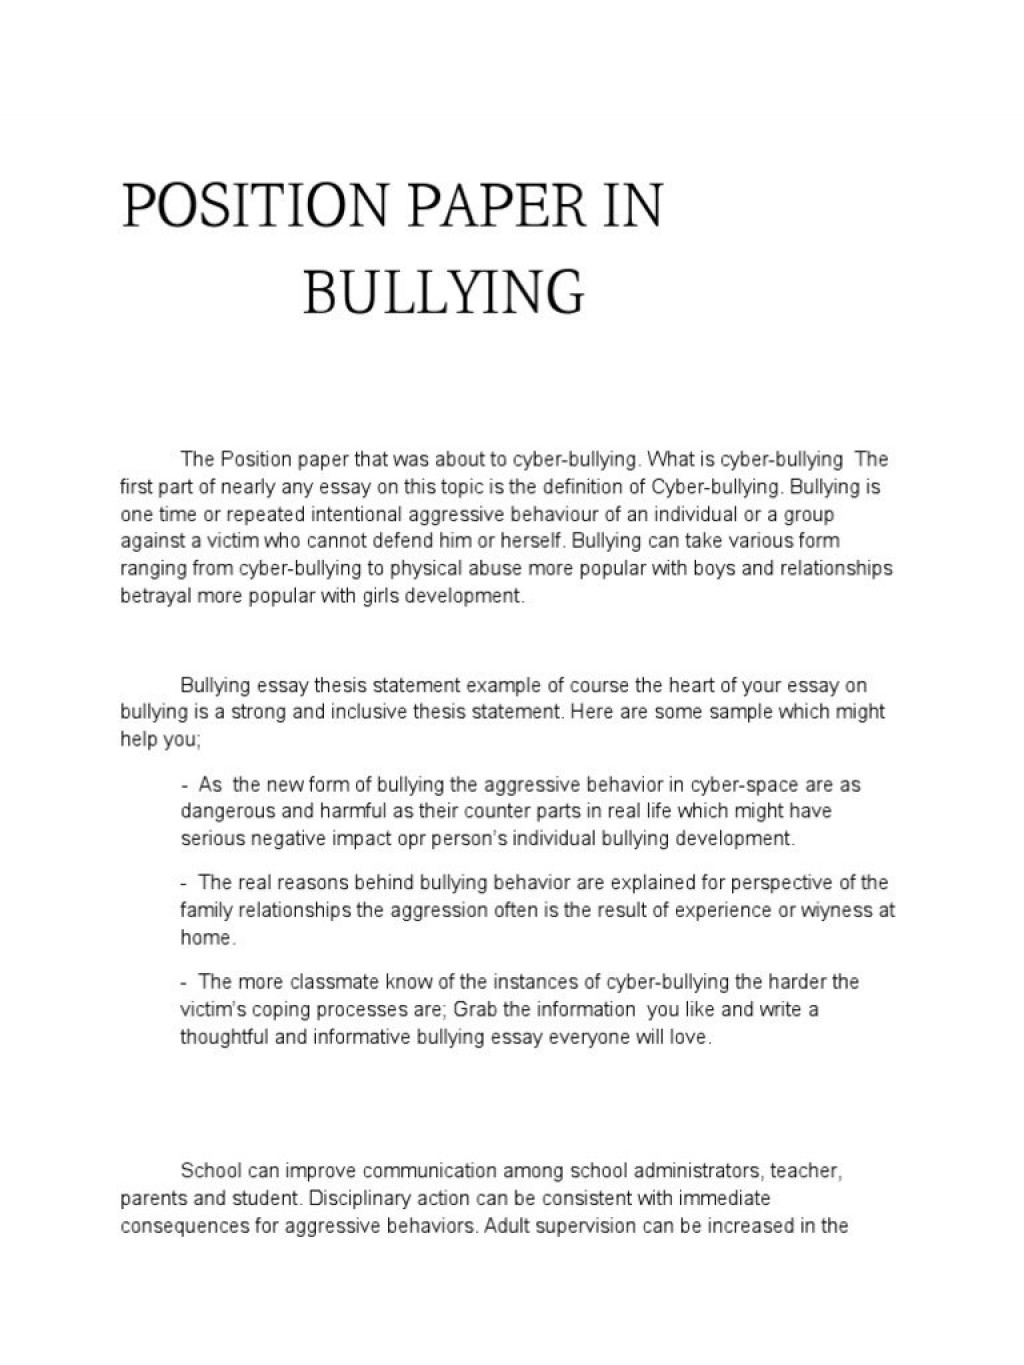 005 Bullying Essay Example Good Conclusion For Academic Writing Service Cause And Effect On In Awful Cyber Outline Creative Titles Anti Large